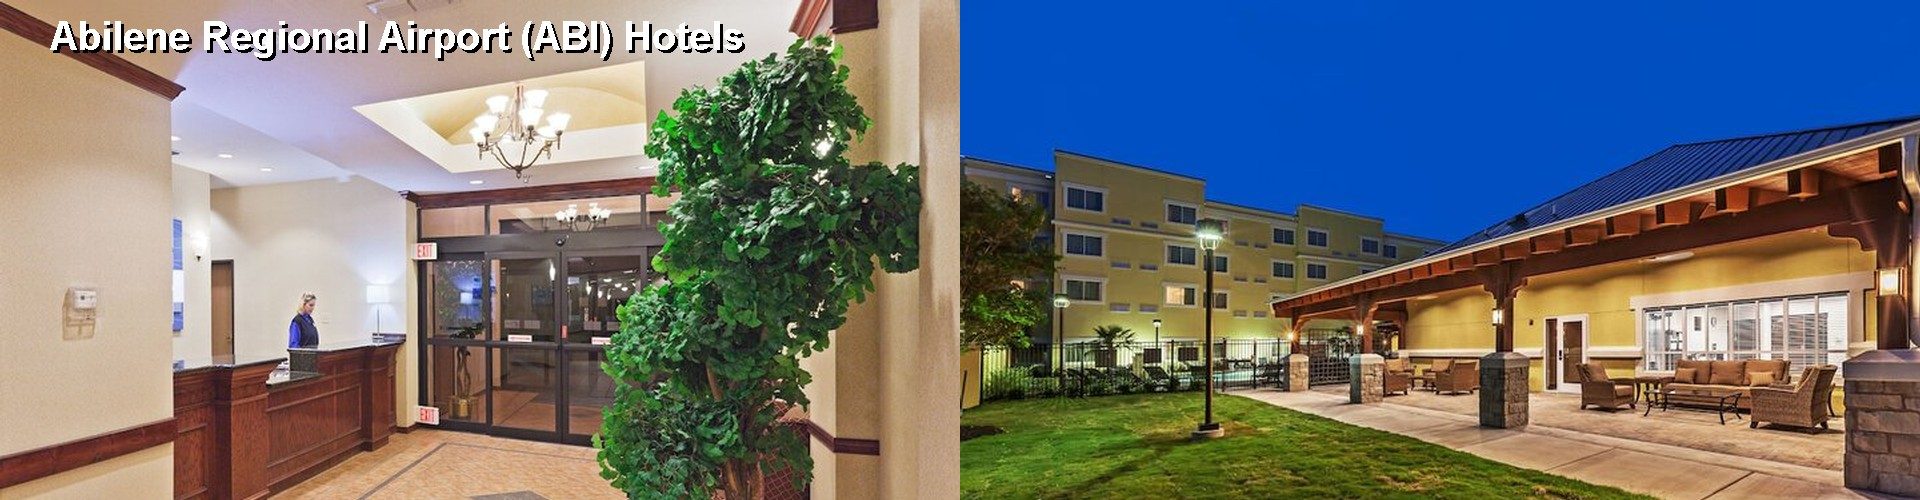 5 Best Hotels near Abilene Regional Airport (ABI)